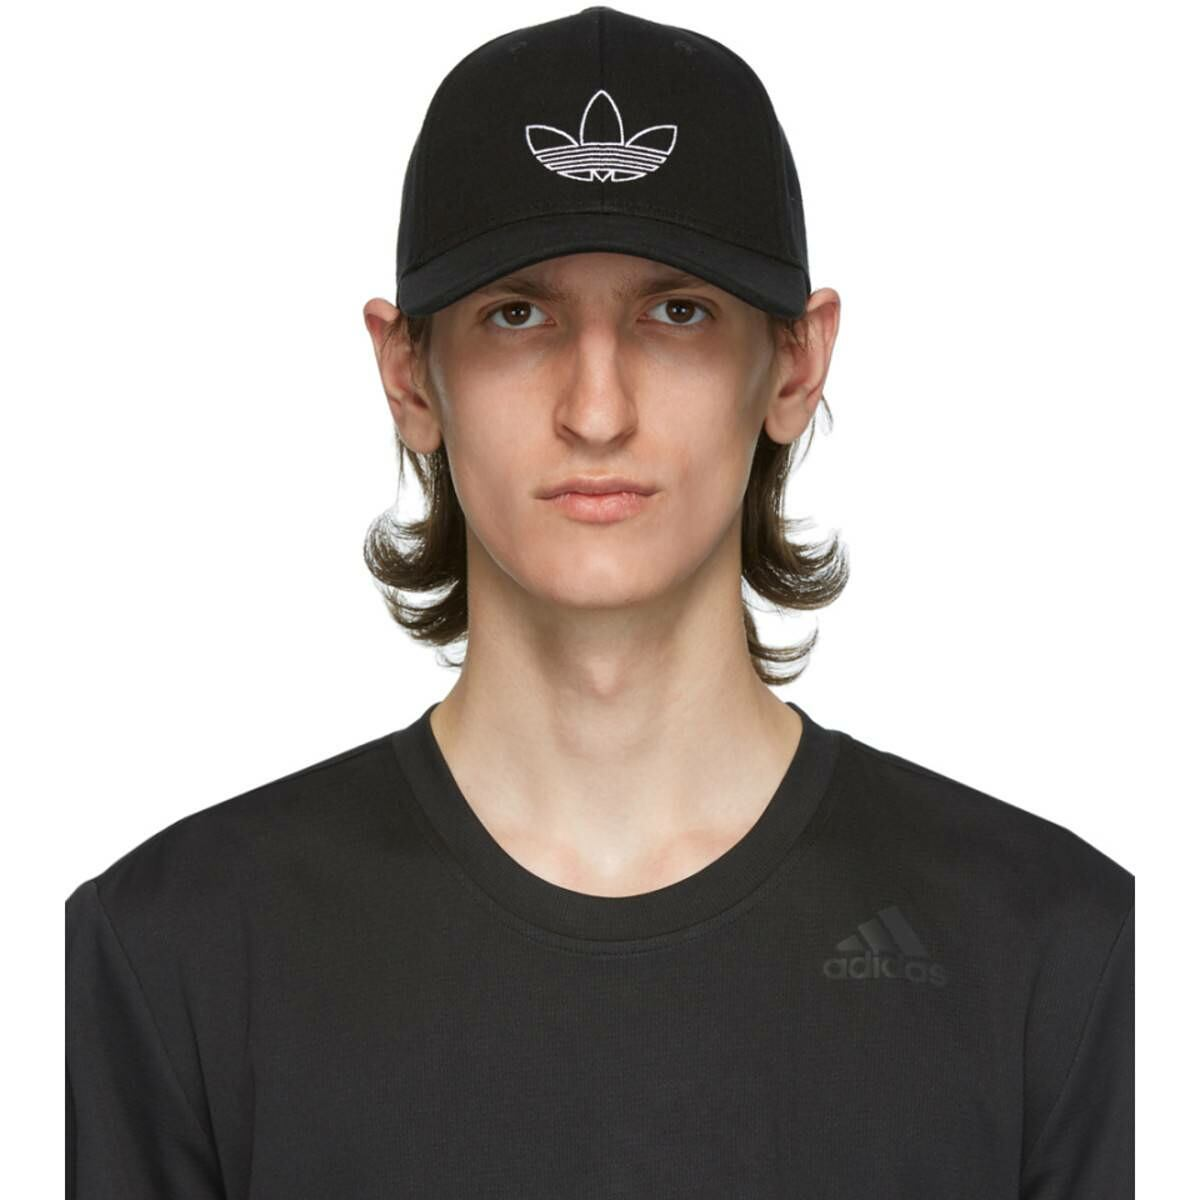 adidas Originals Black Classic Outline Cap Ssense USA MEN Men ACCESSORIES Mens CAPS